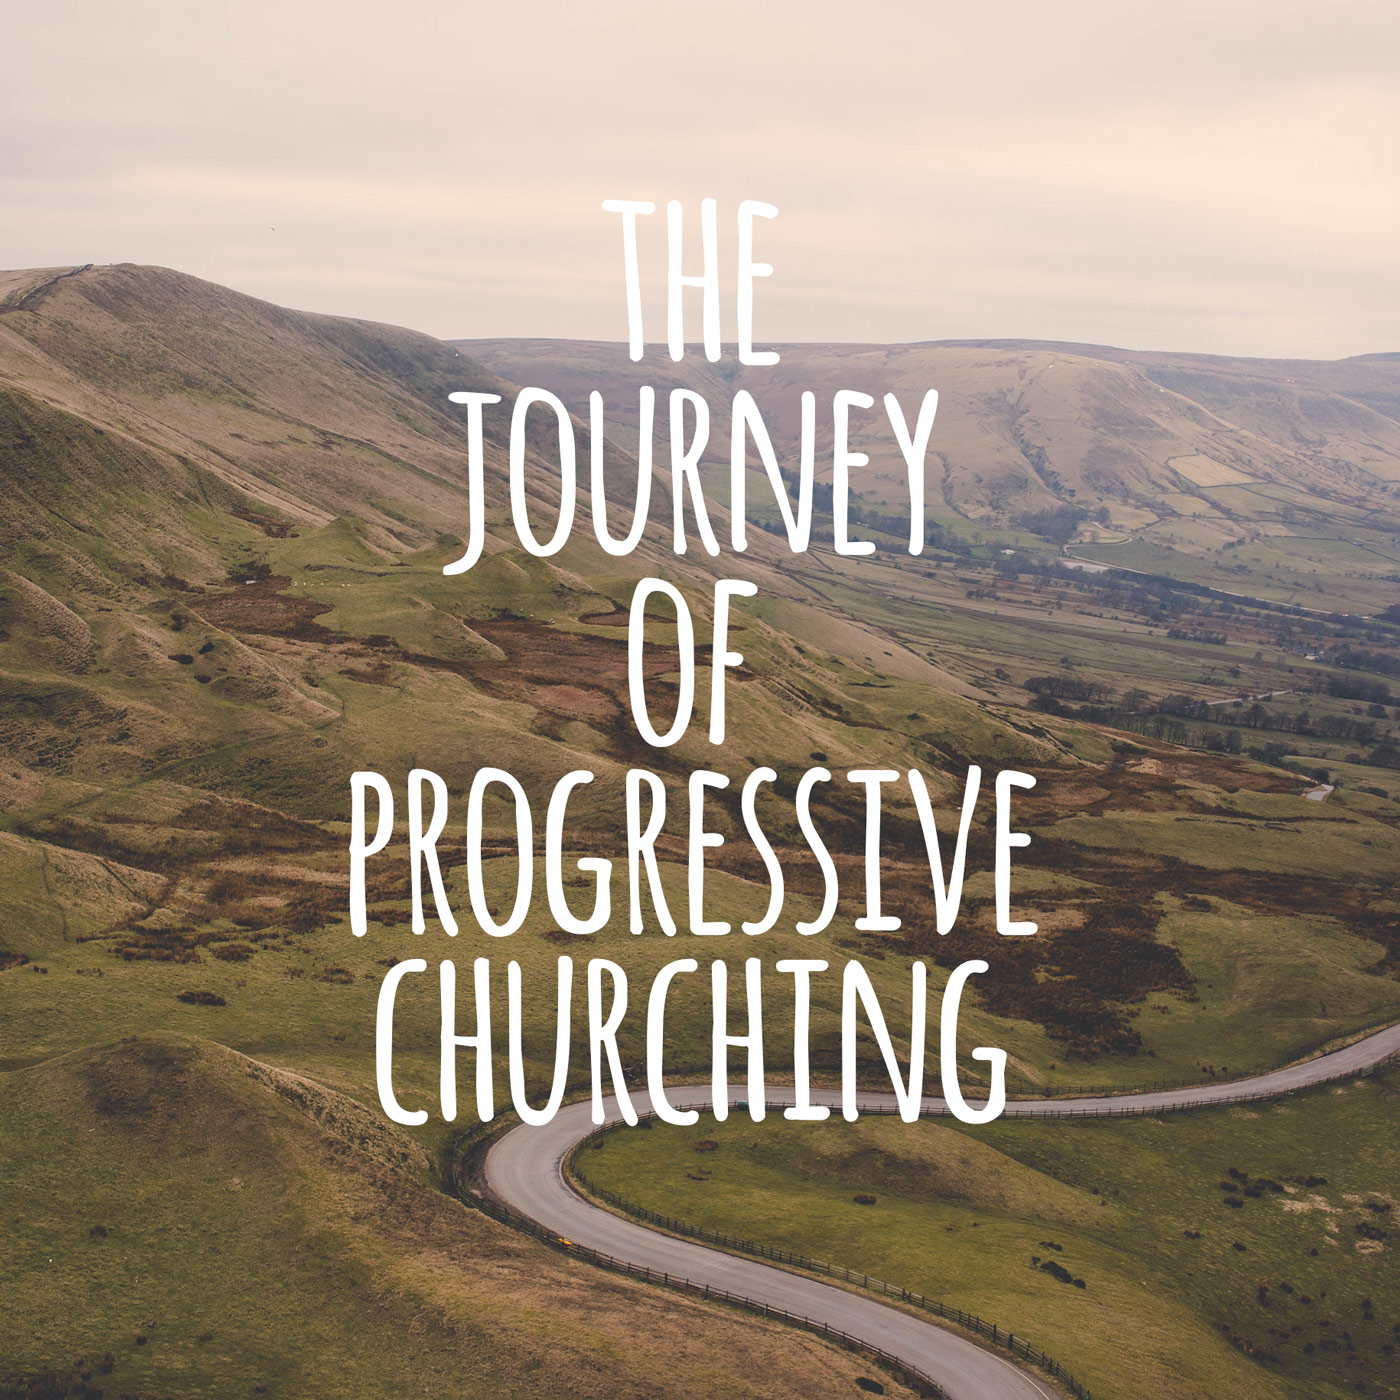 the-journey-of-progressive-churching.jpg